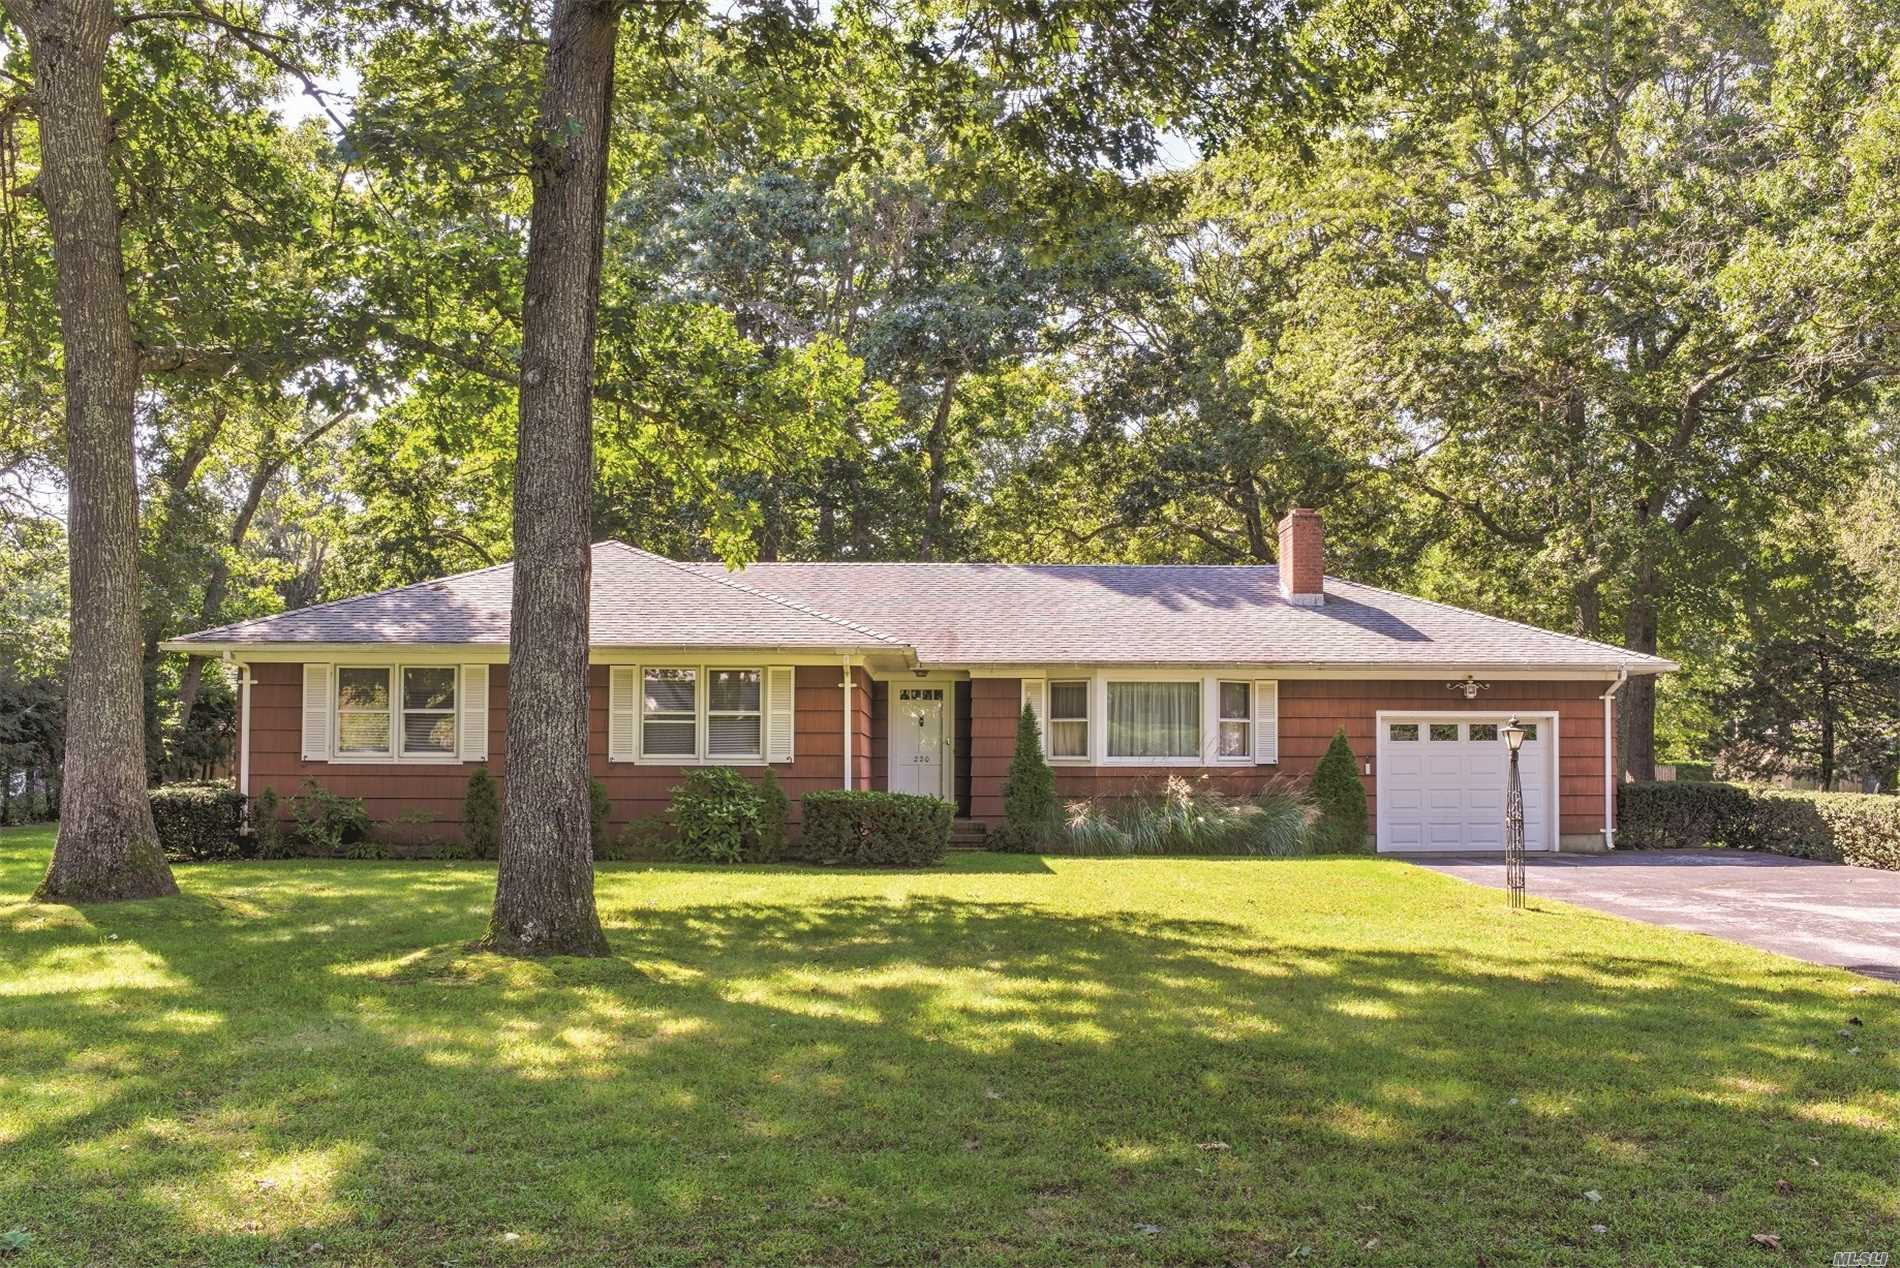 Photo of home for sale at 220 Cindy Ln, Mattituck NY